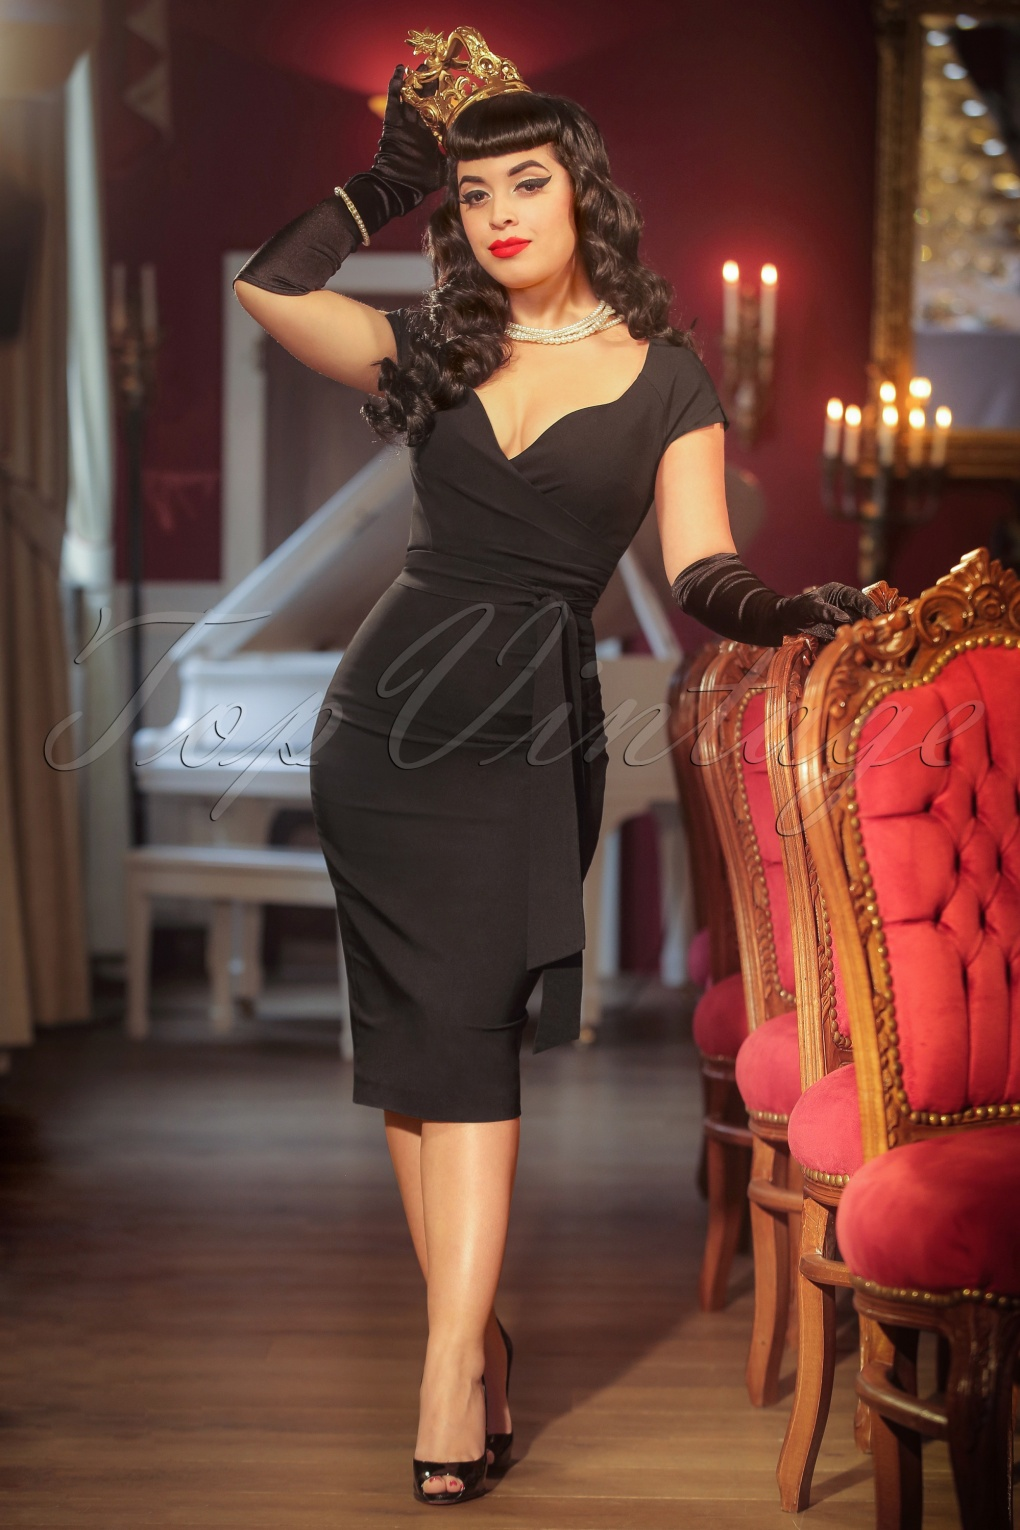 Vintage Inspired Cocktail Dresses, Party Dresses The Bombshell Pencil Dress in Black £105.32 AT vintagedancer.com